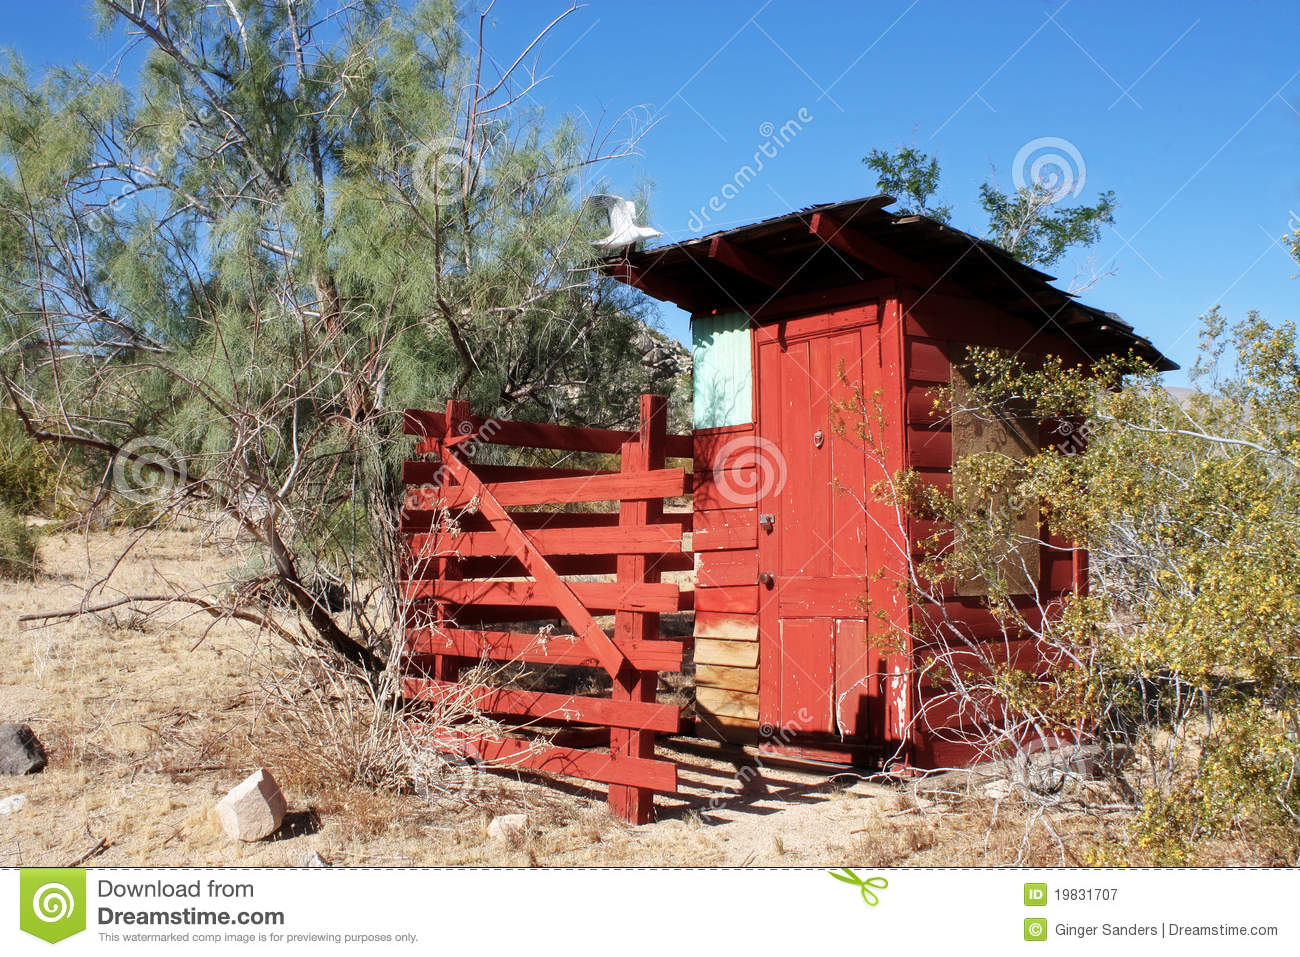 Vintage Red Outhouse in The Desert